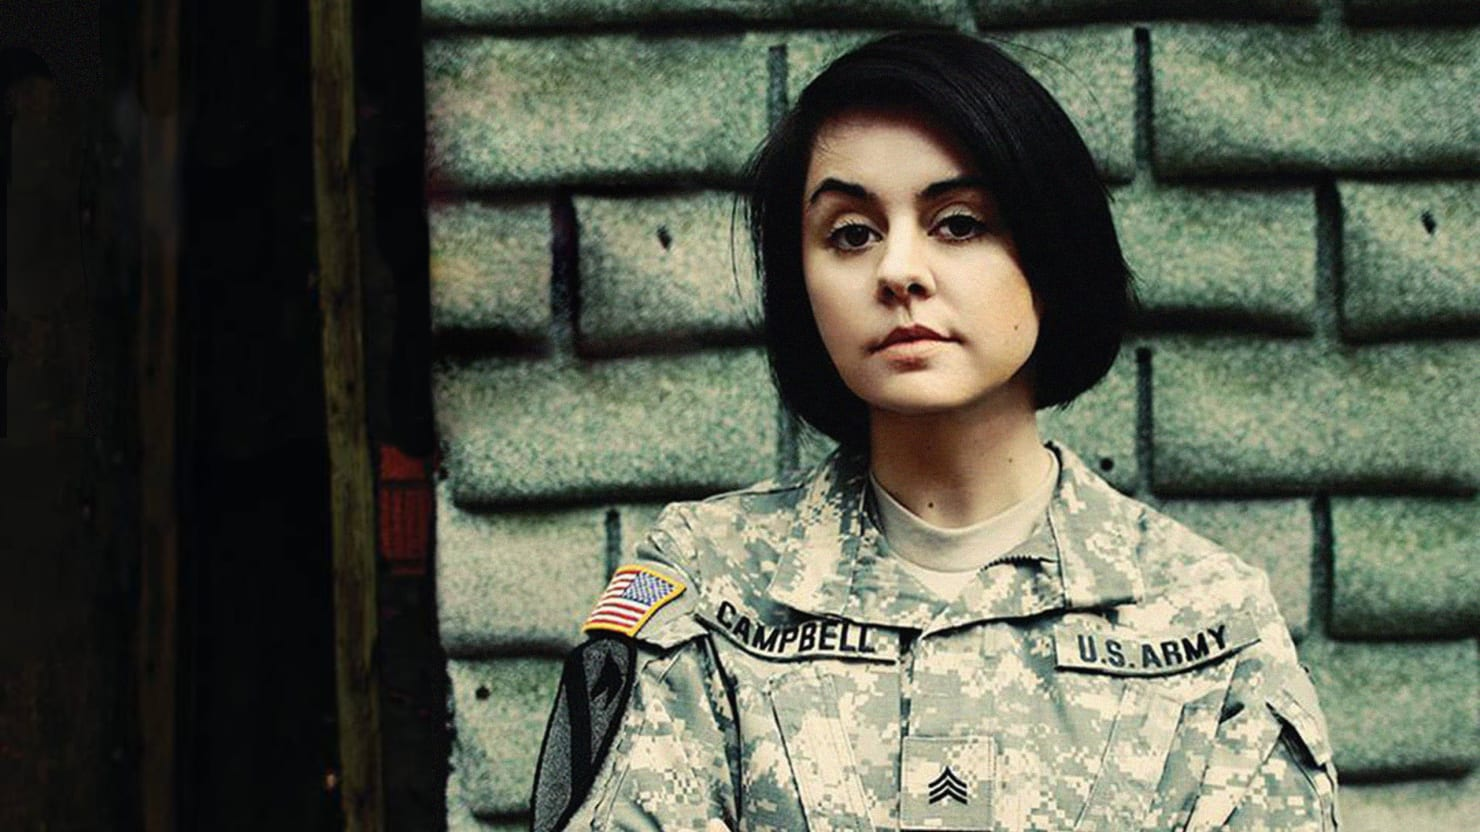 The Army's Taxpayer-Supported Punk Band